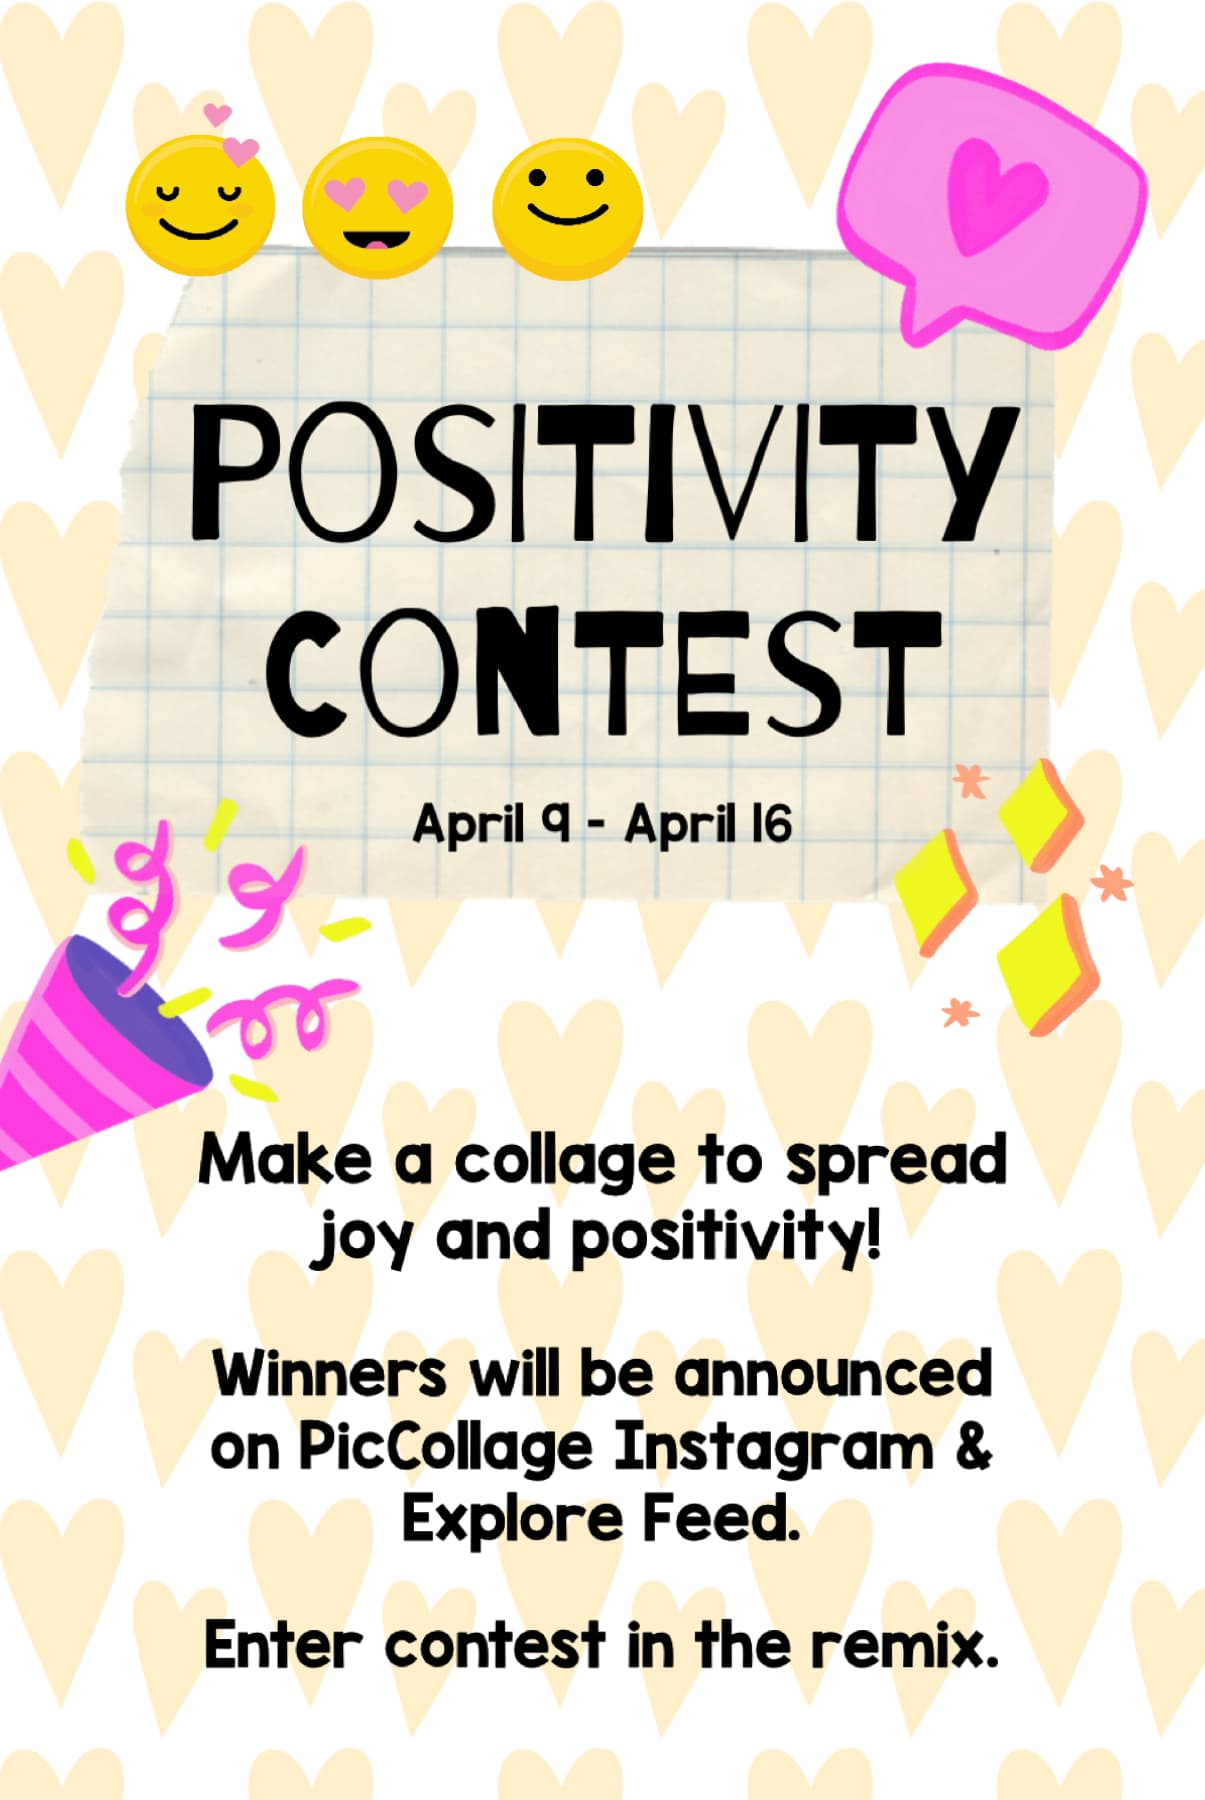 New contest is live! Submit before next Thursday 4/10. Spread some positivity ✨